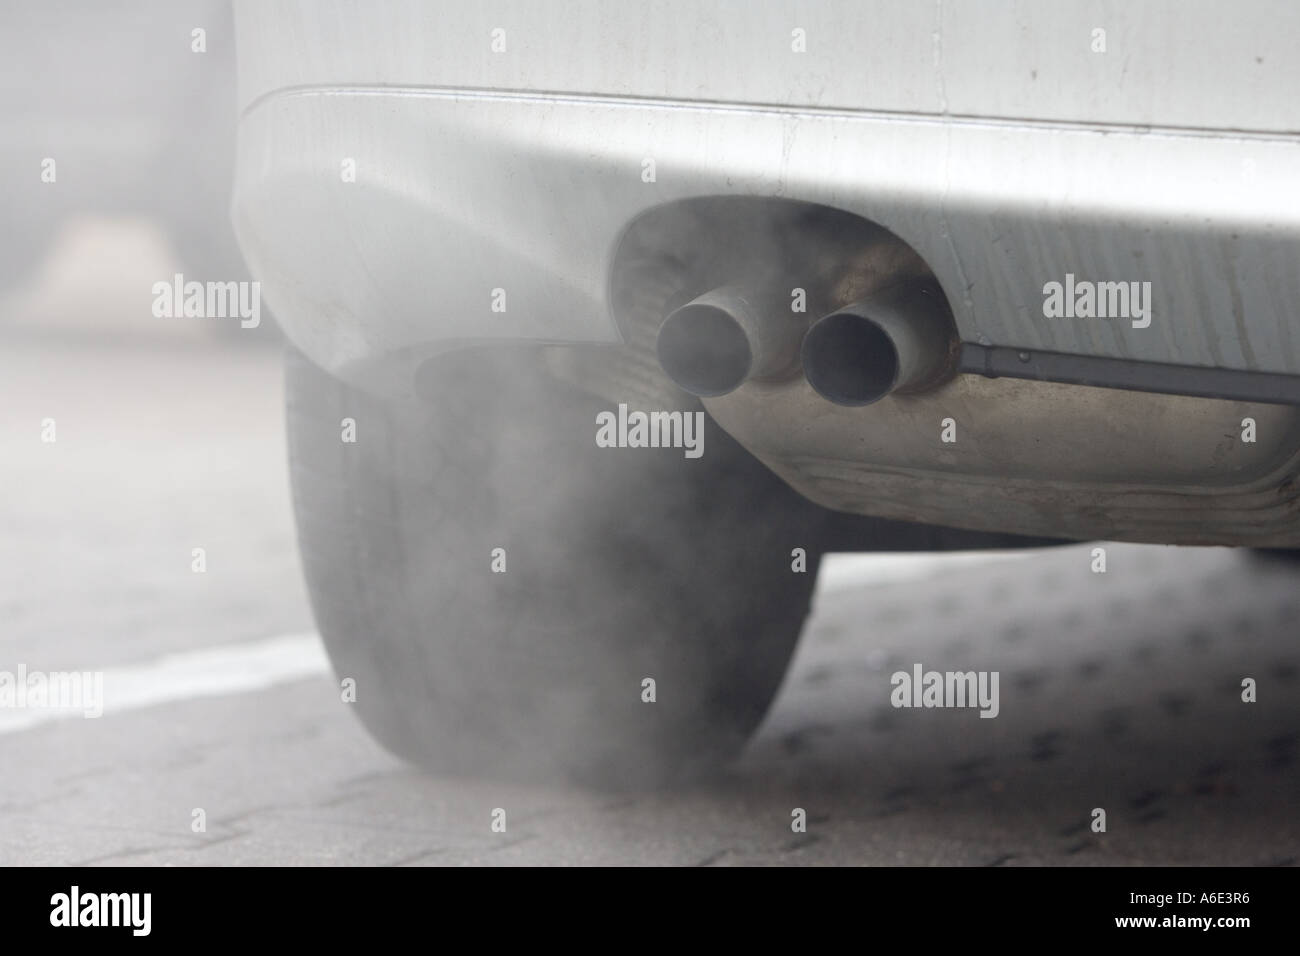 DEU, 09.02.2005, exhause emissions particular filter, Diesel filter, particular filter for diesel engined vehicles - Stock Image